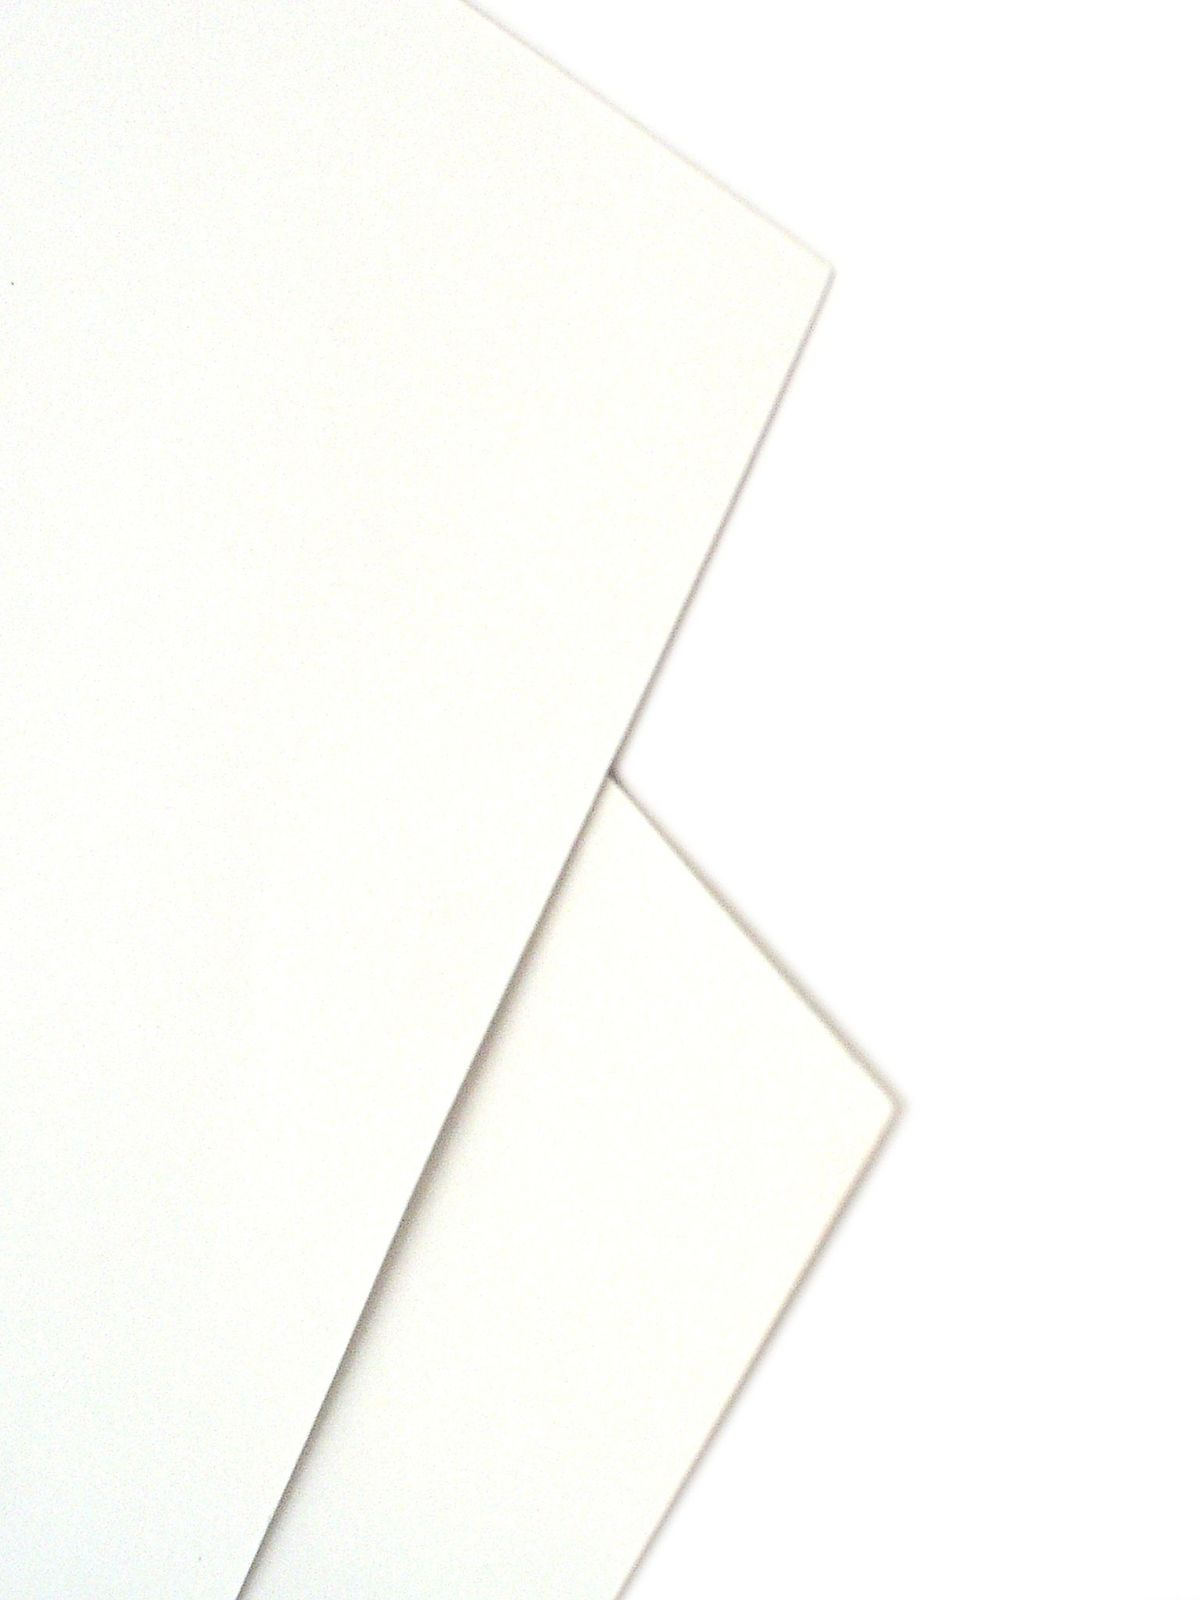 Series 400 Premium Recycled Drawing Sheets